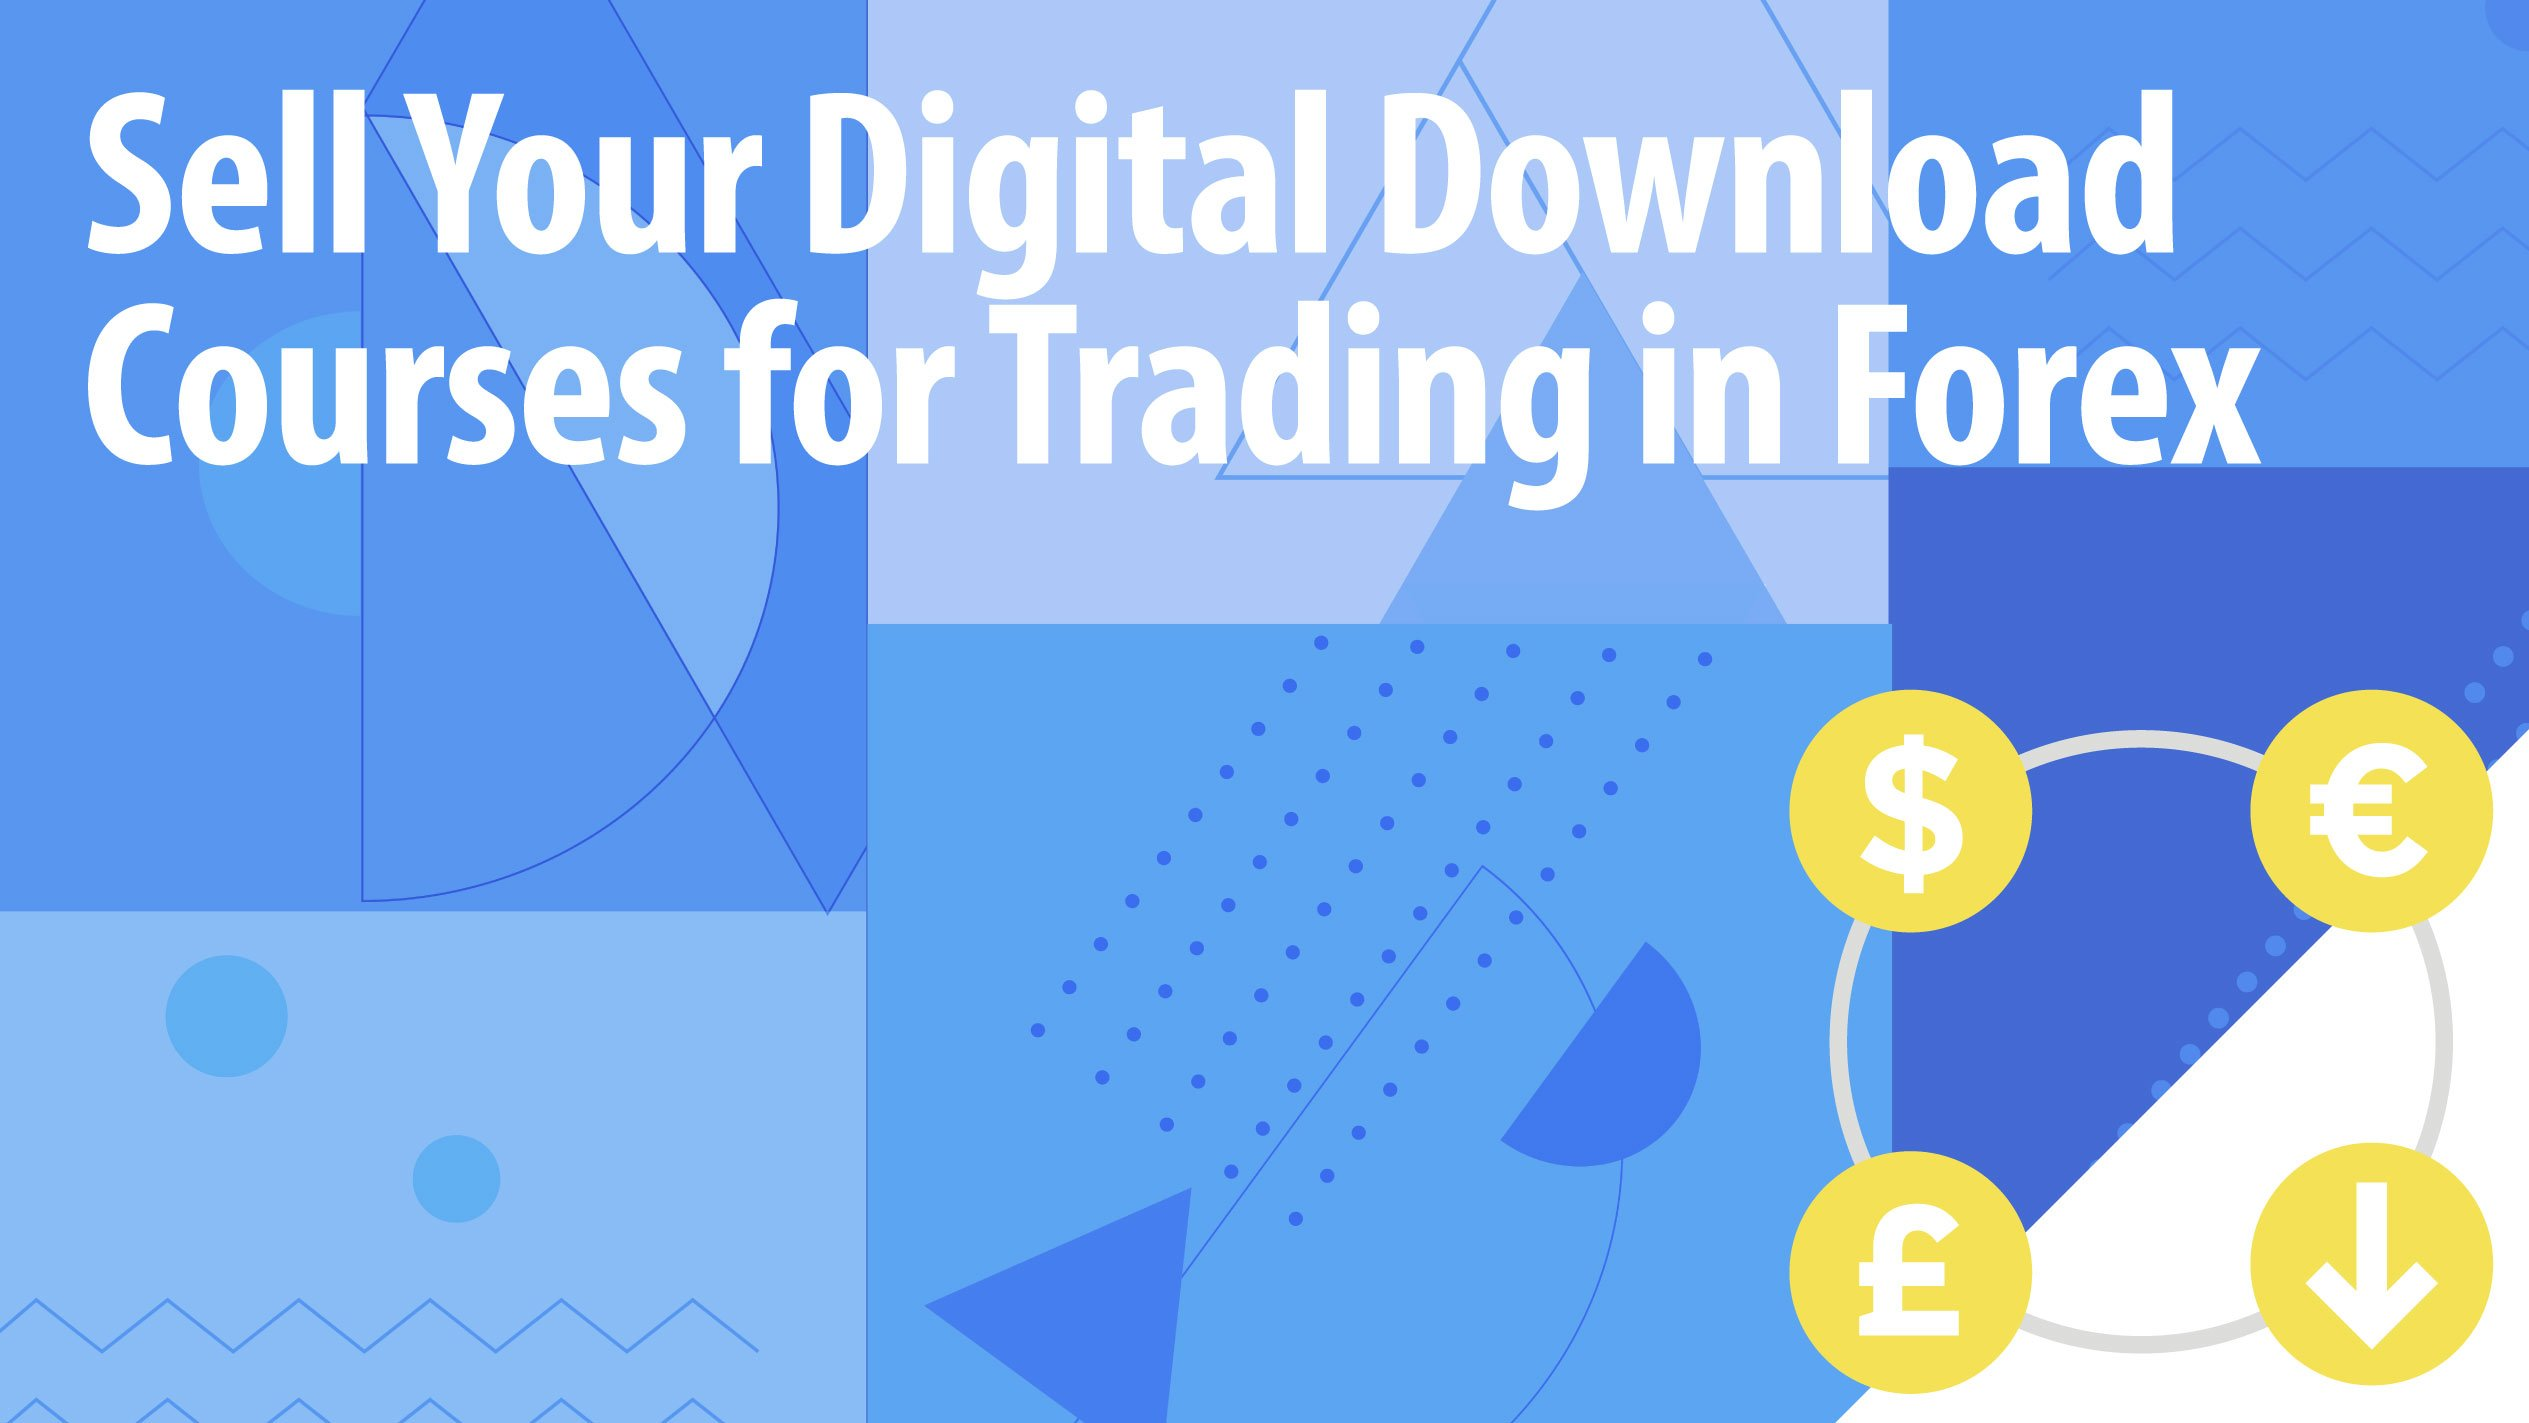 Sell Your Digital Download Courses for Trading in Forex